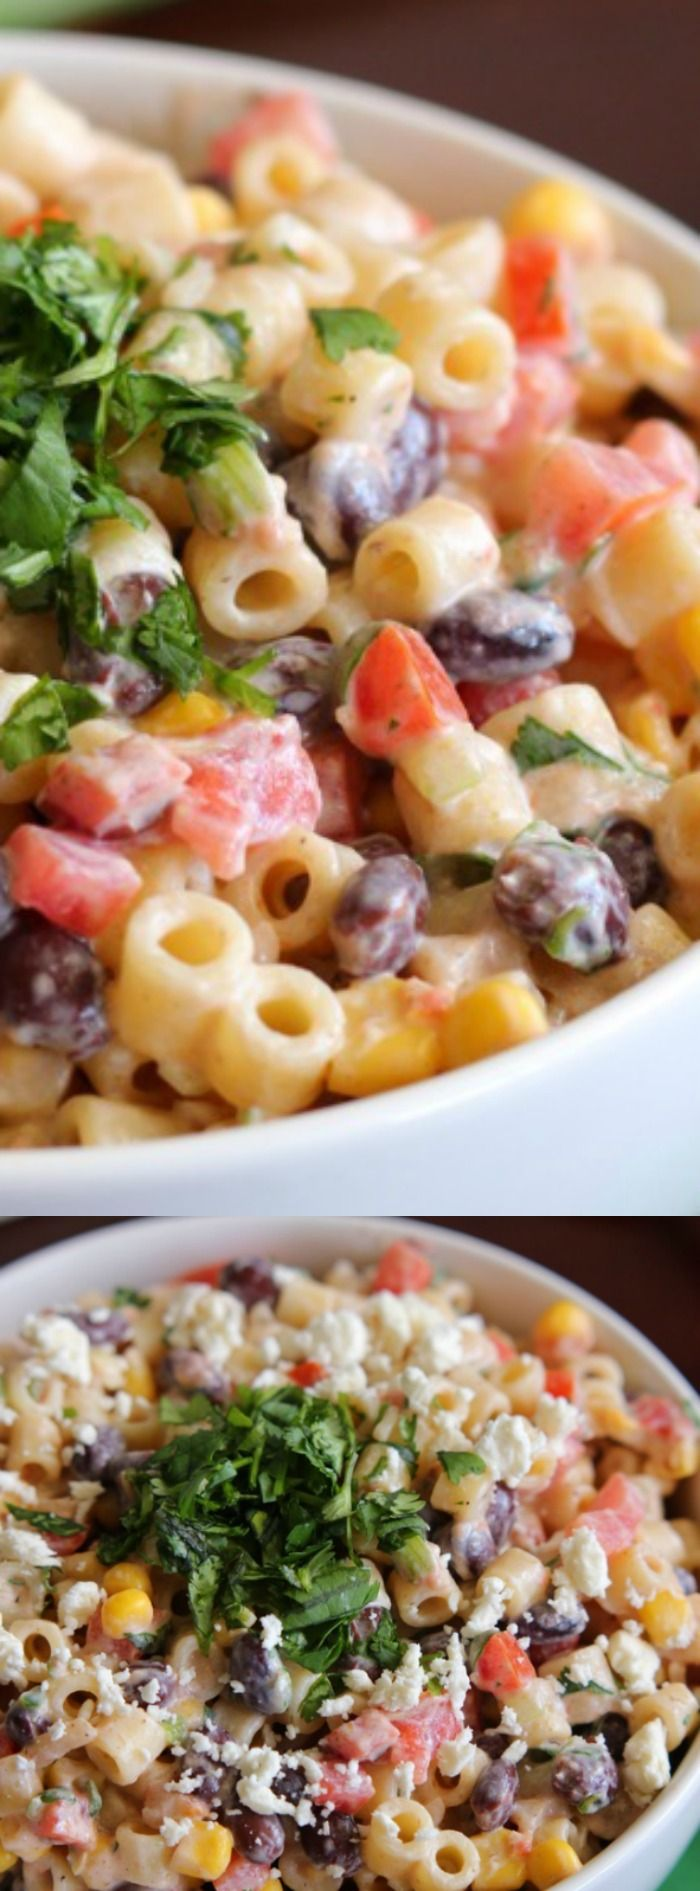 This Mexican Pasta Salad from The Recipe Critic is a delicious pasta salad…